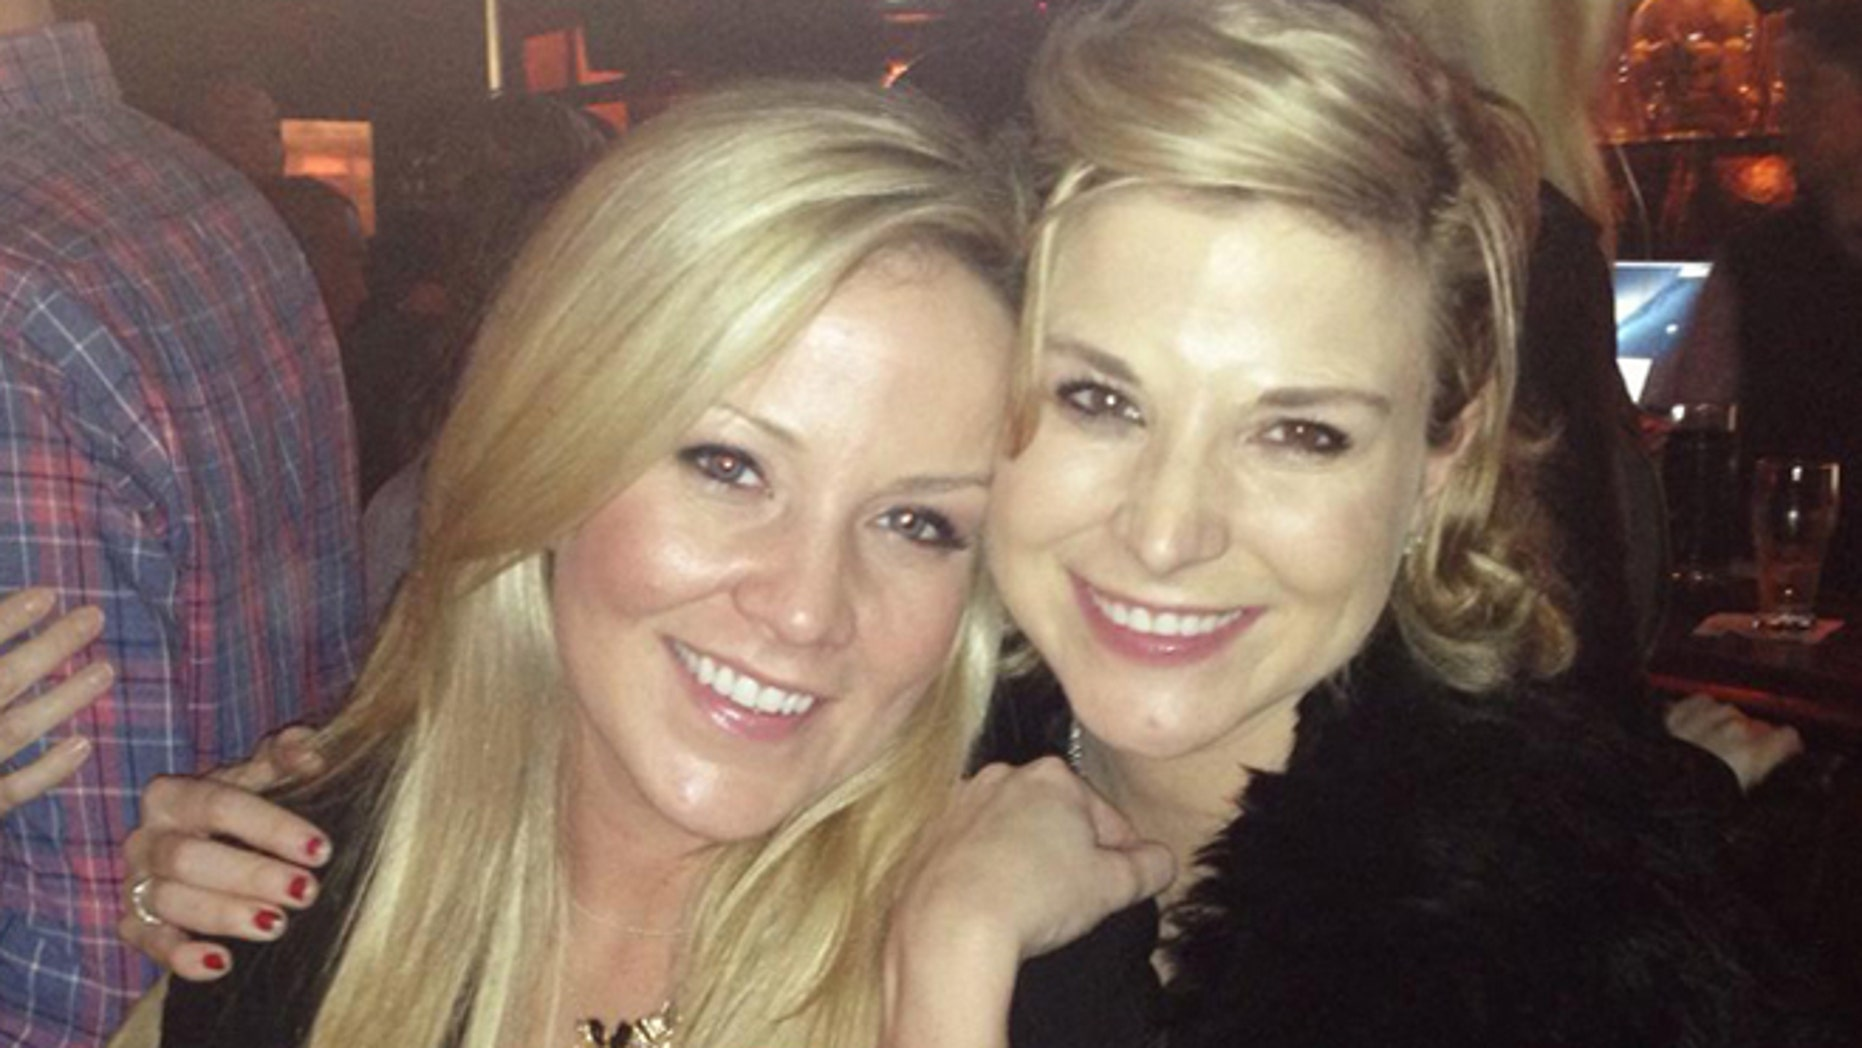 Megan and Diem Brown pose together in January 2014 in New York. Diem Brown lost her battle with cancer later that year in November 2014.